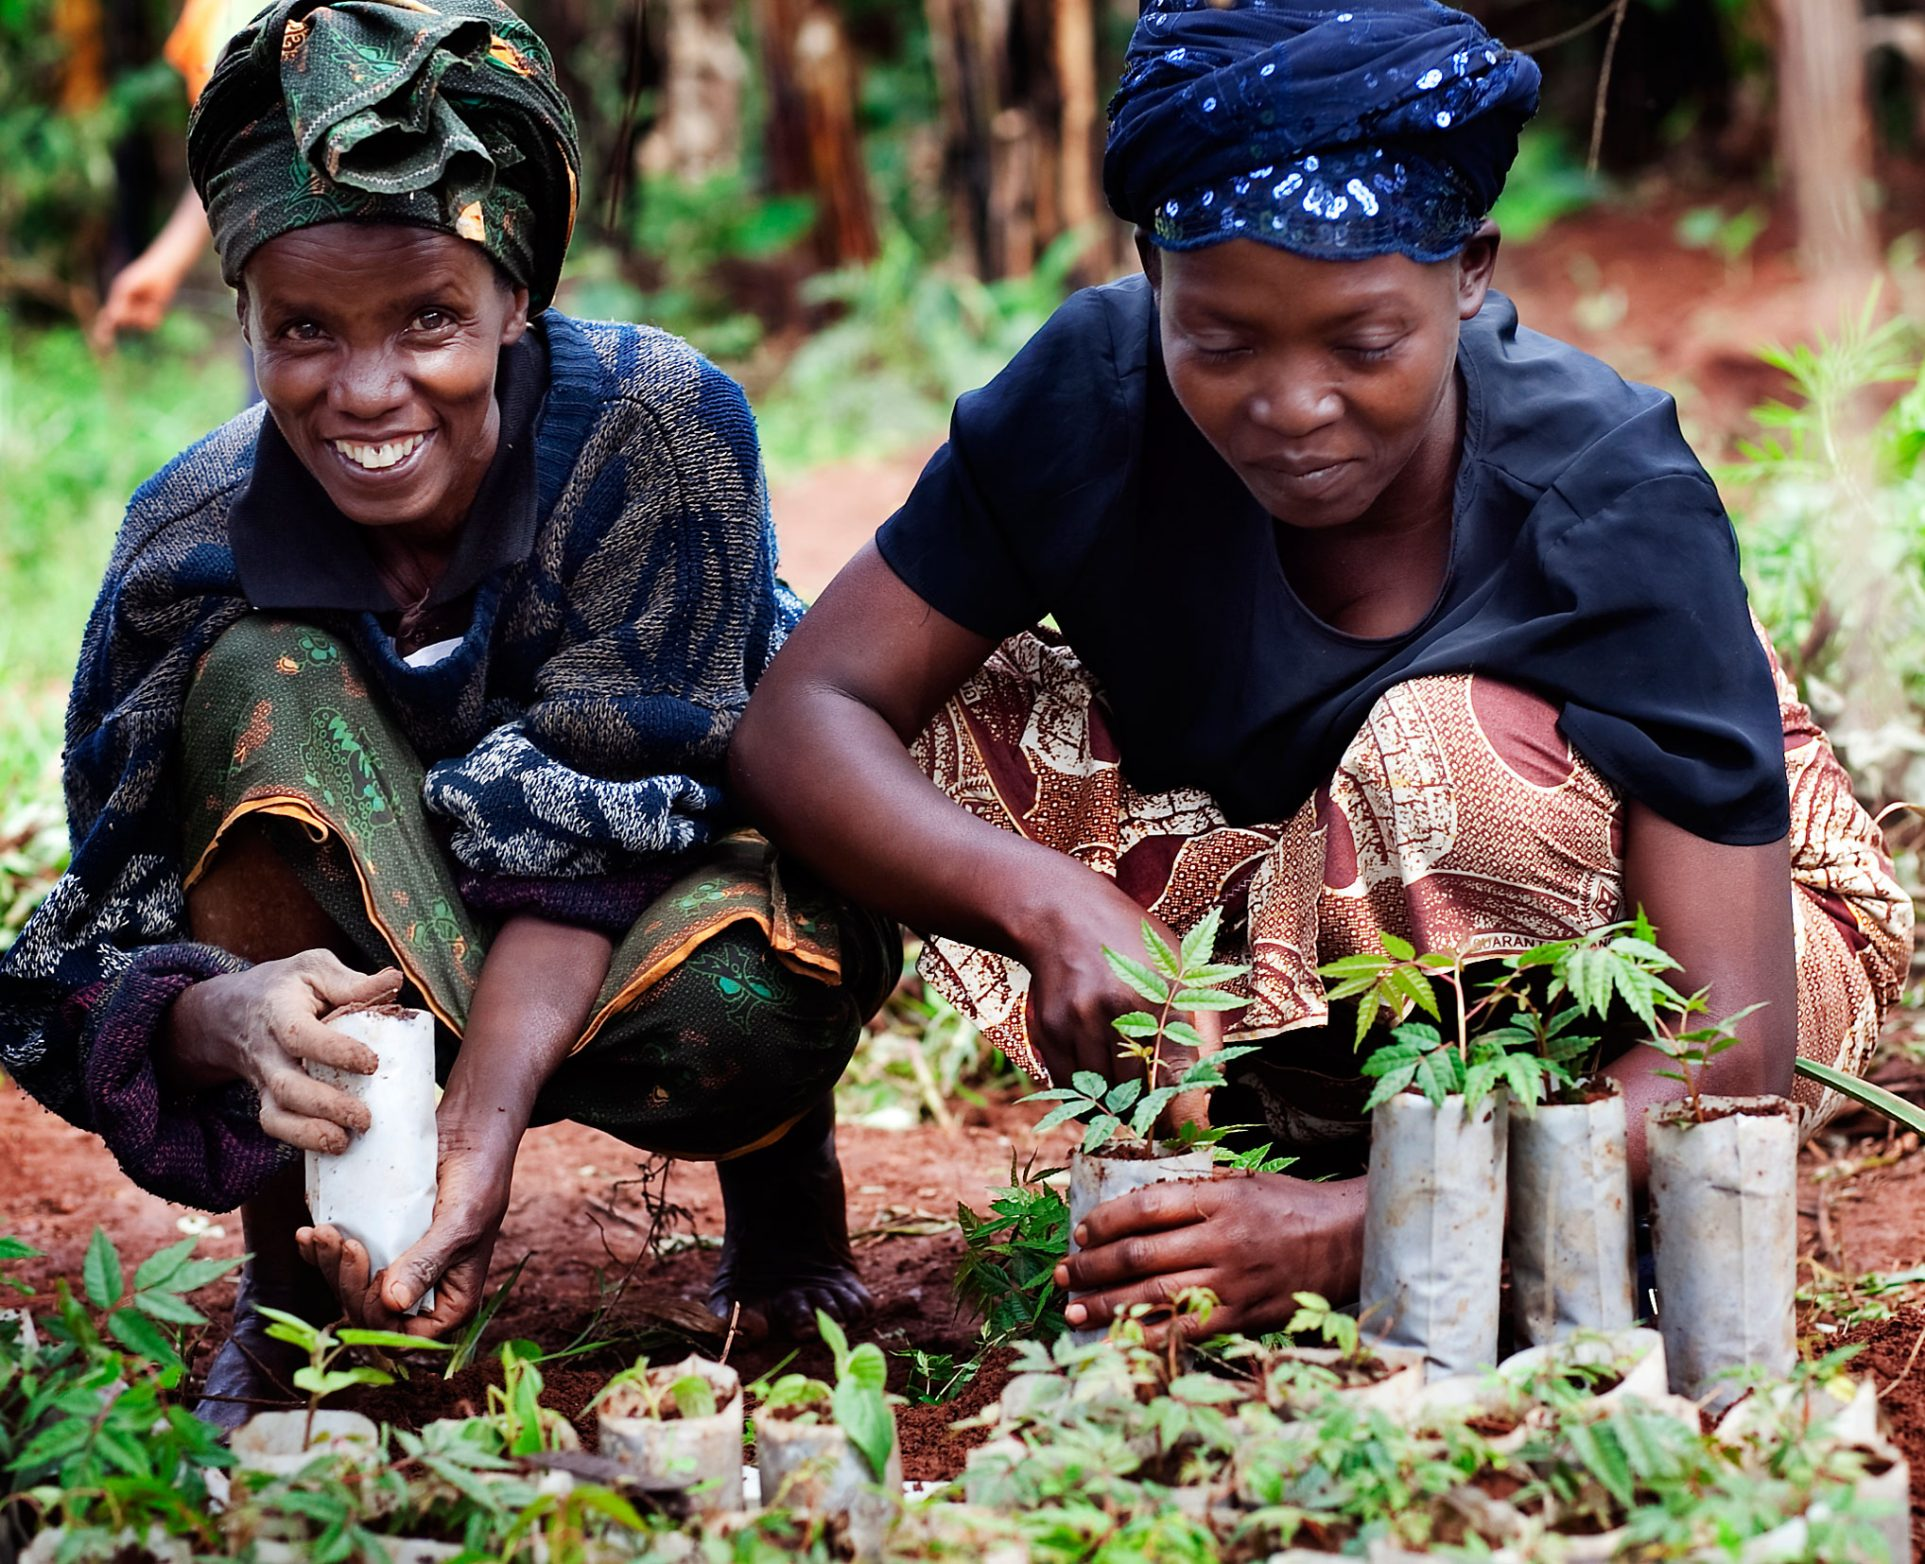 Loransi Mukarutagwenda and Domitila Mukanyirigira from Gasabo District, Rwanda are members in a farmers' cooperative. Together with the other members they run a tree nursery. They are preparing seedlings to be planted on their neighbours' farms.